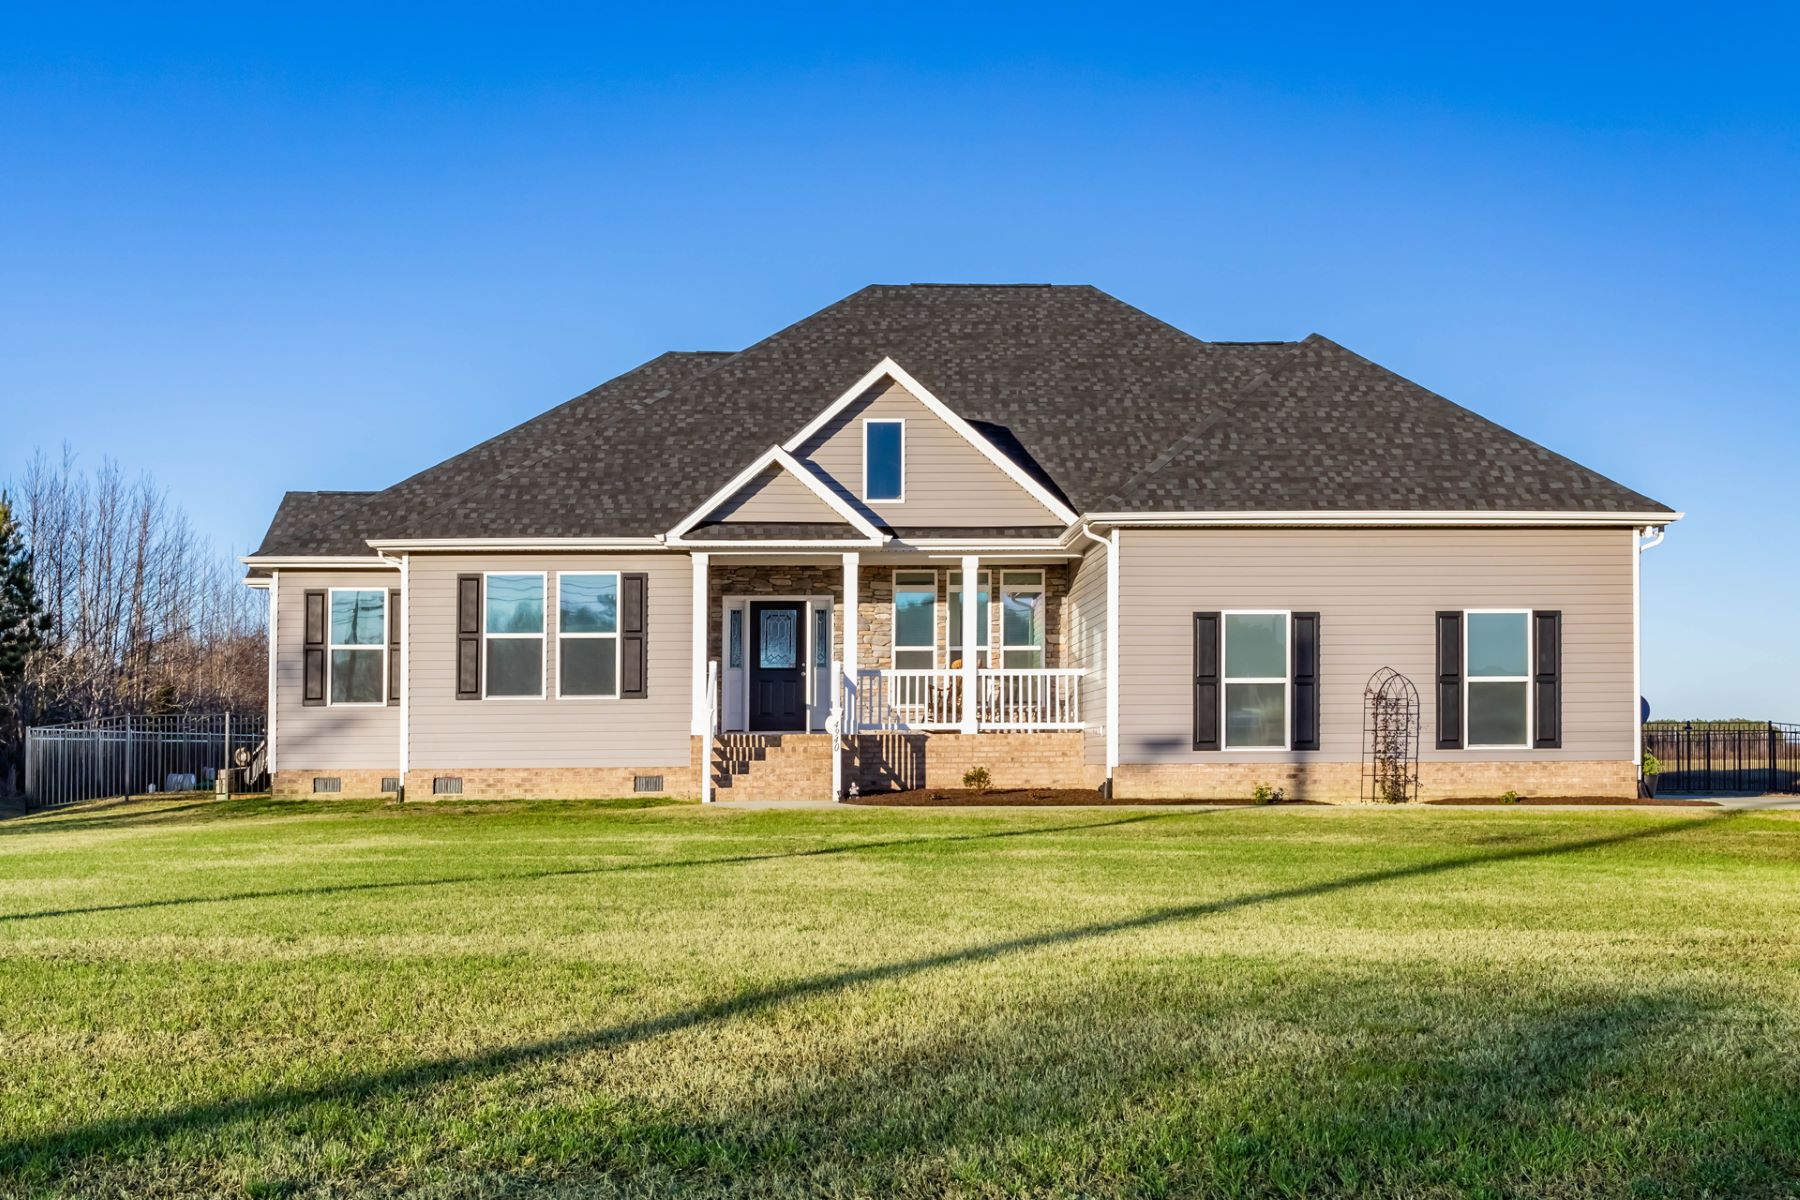 Single Family Homes for Active at PLEASANT GROVE 4940 Ballahack Rd Chesapeake, Virginia 23322 United States